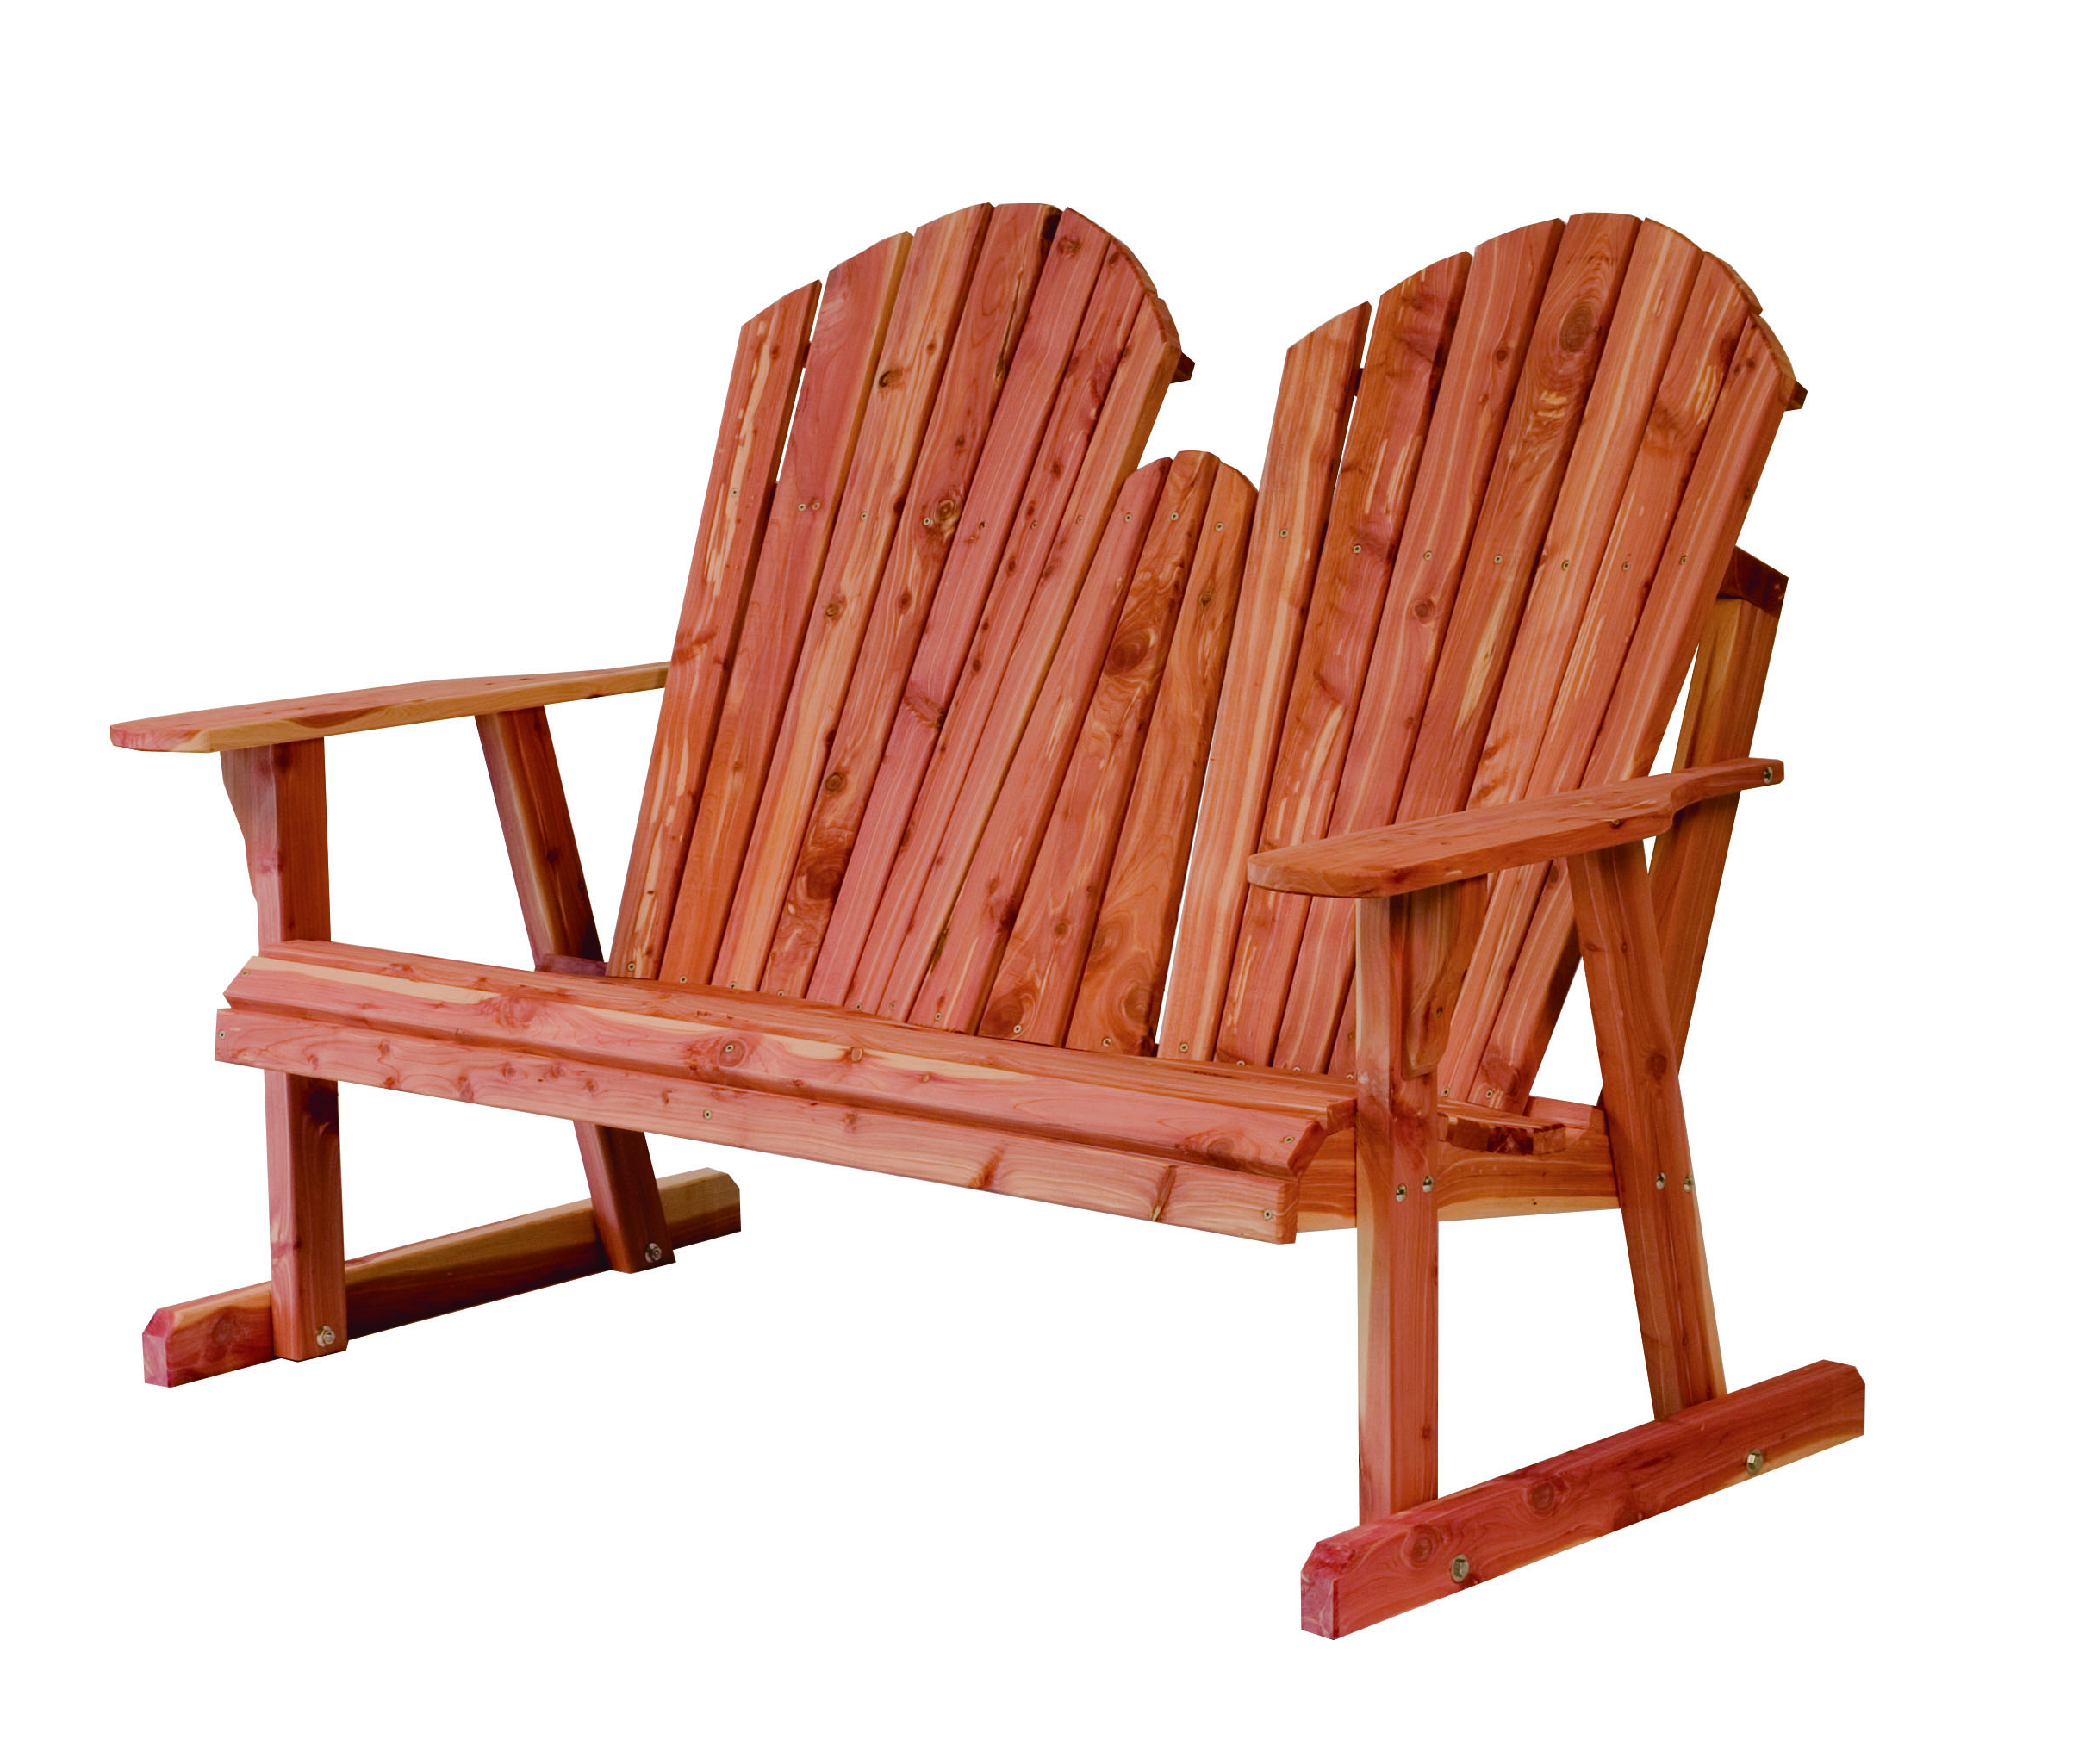 Fashionable Rustic Red Cedar Furniture – Sturgeon River Pottery Throughout Low Back Glider Benches (Gallery 27 of 30)